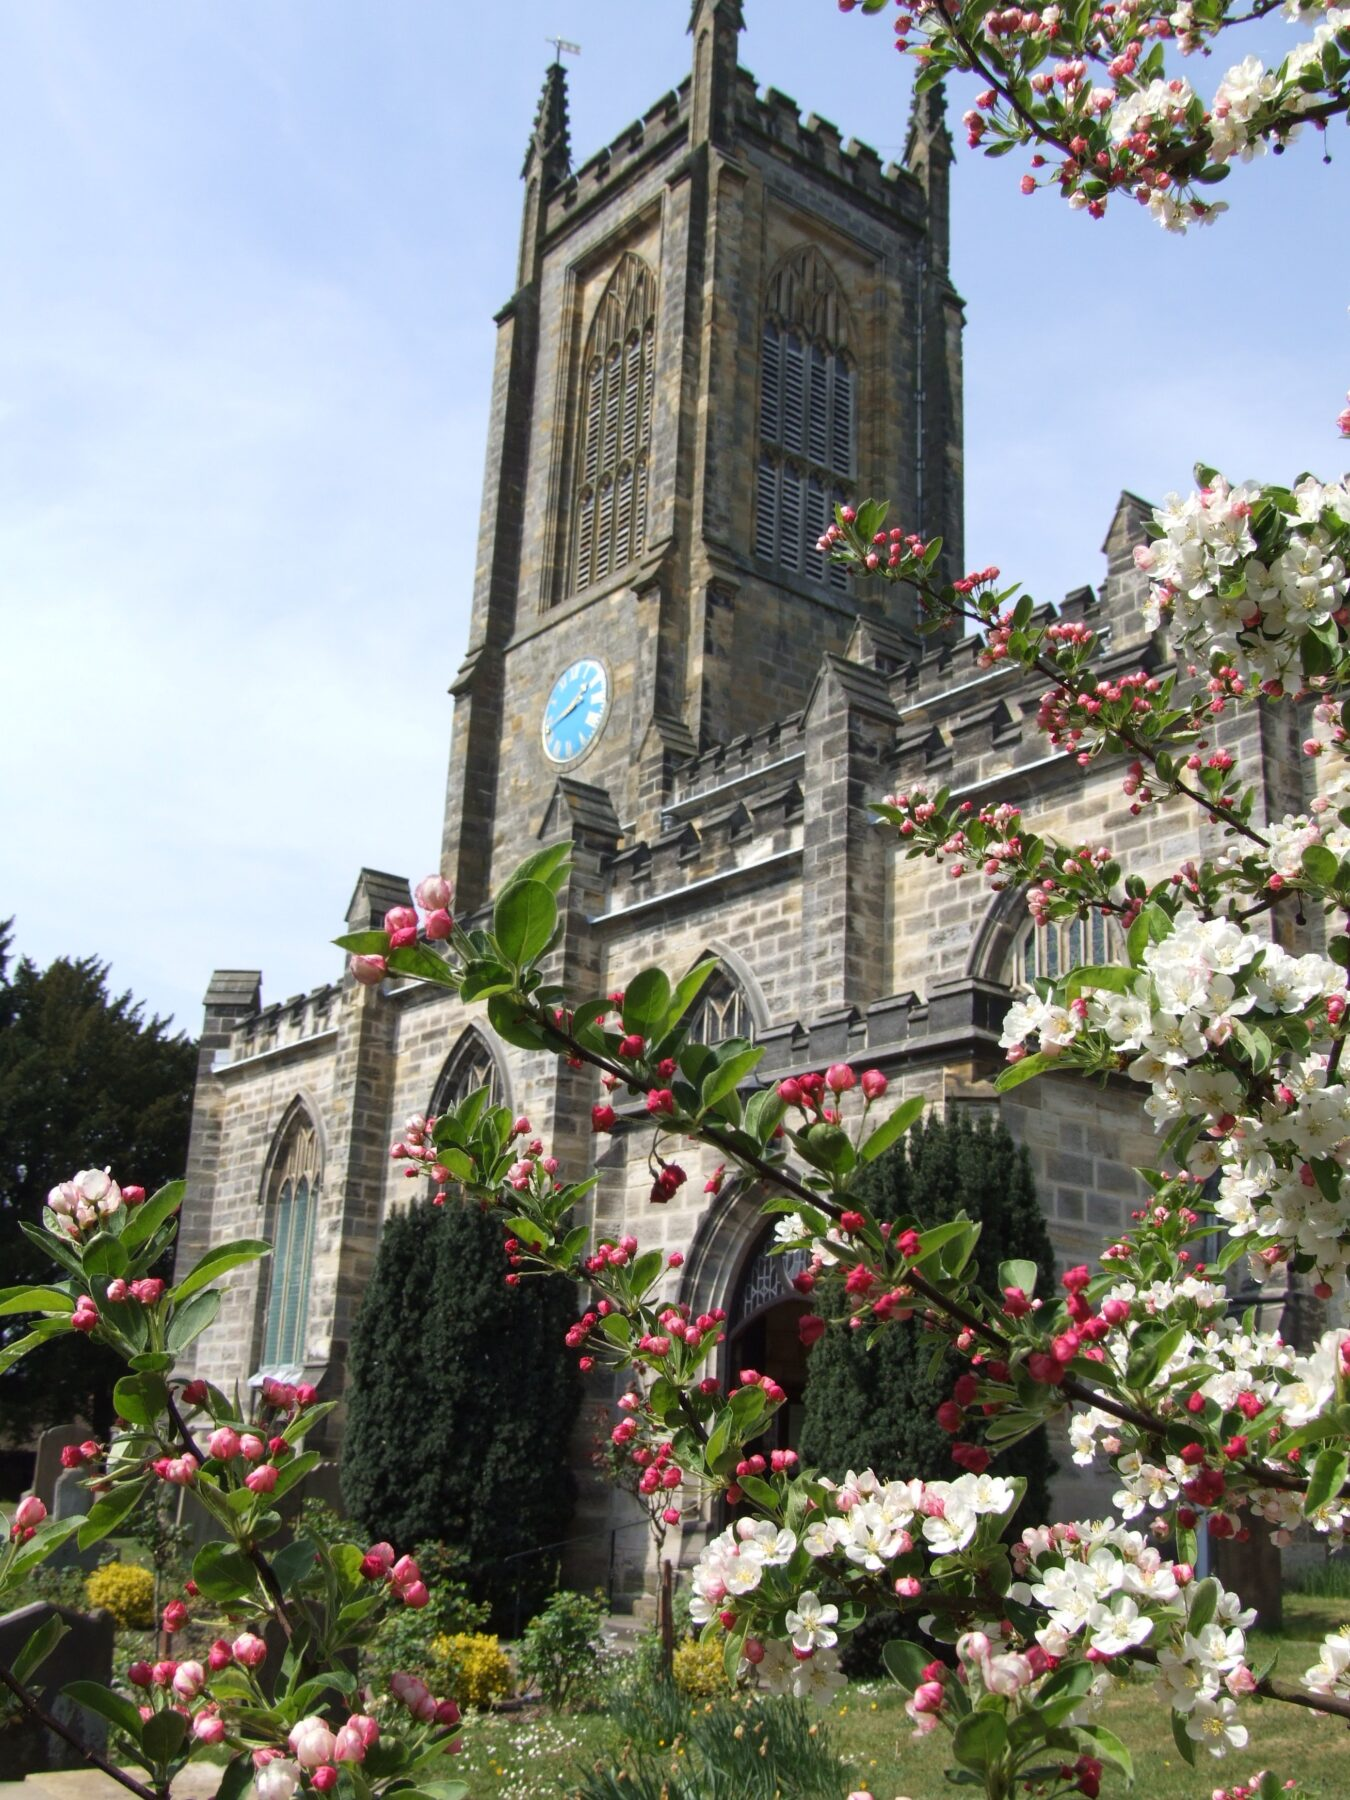 St Swithun's Church Bells will ring at 7pm Thursday 18th April.